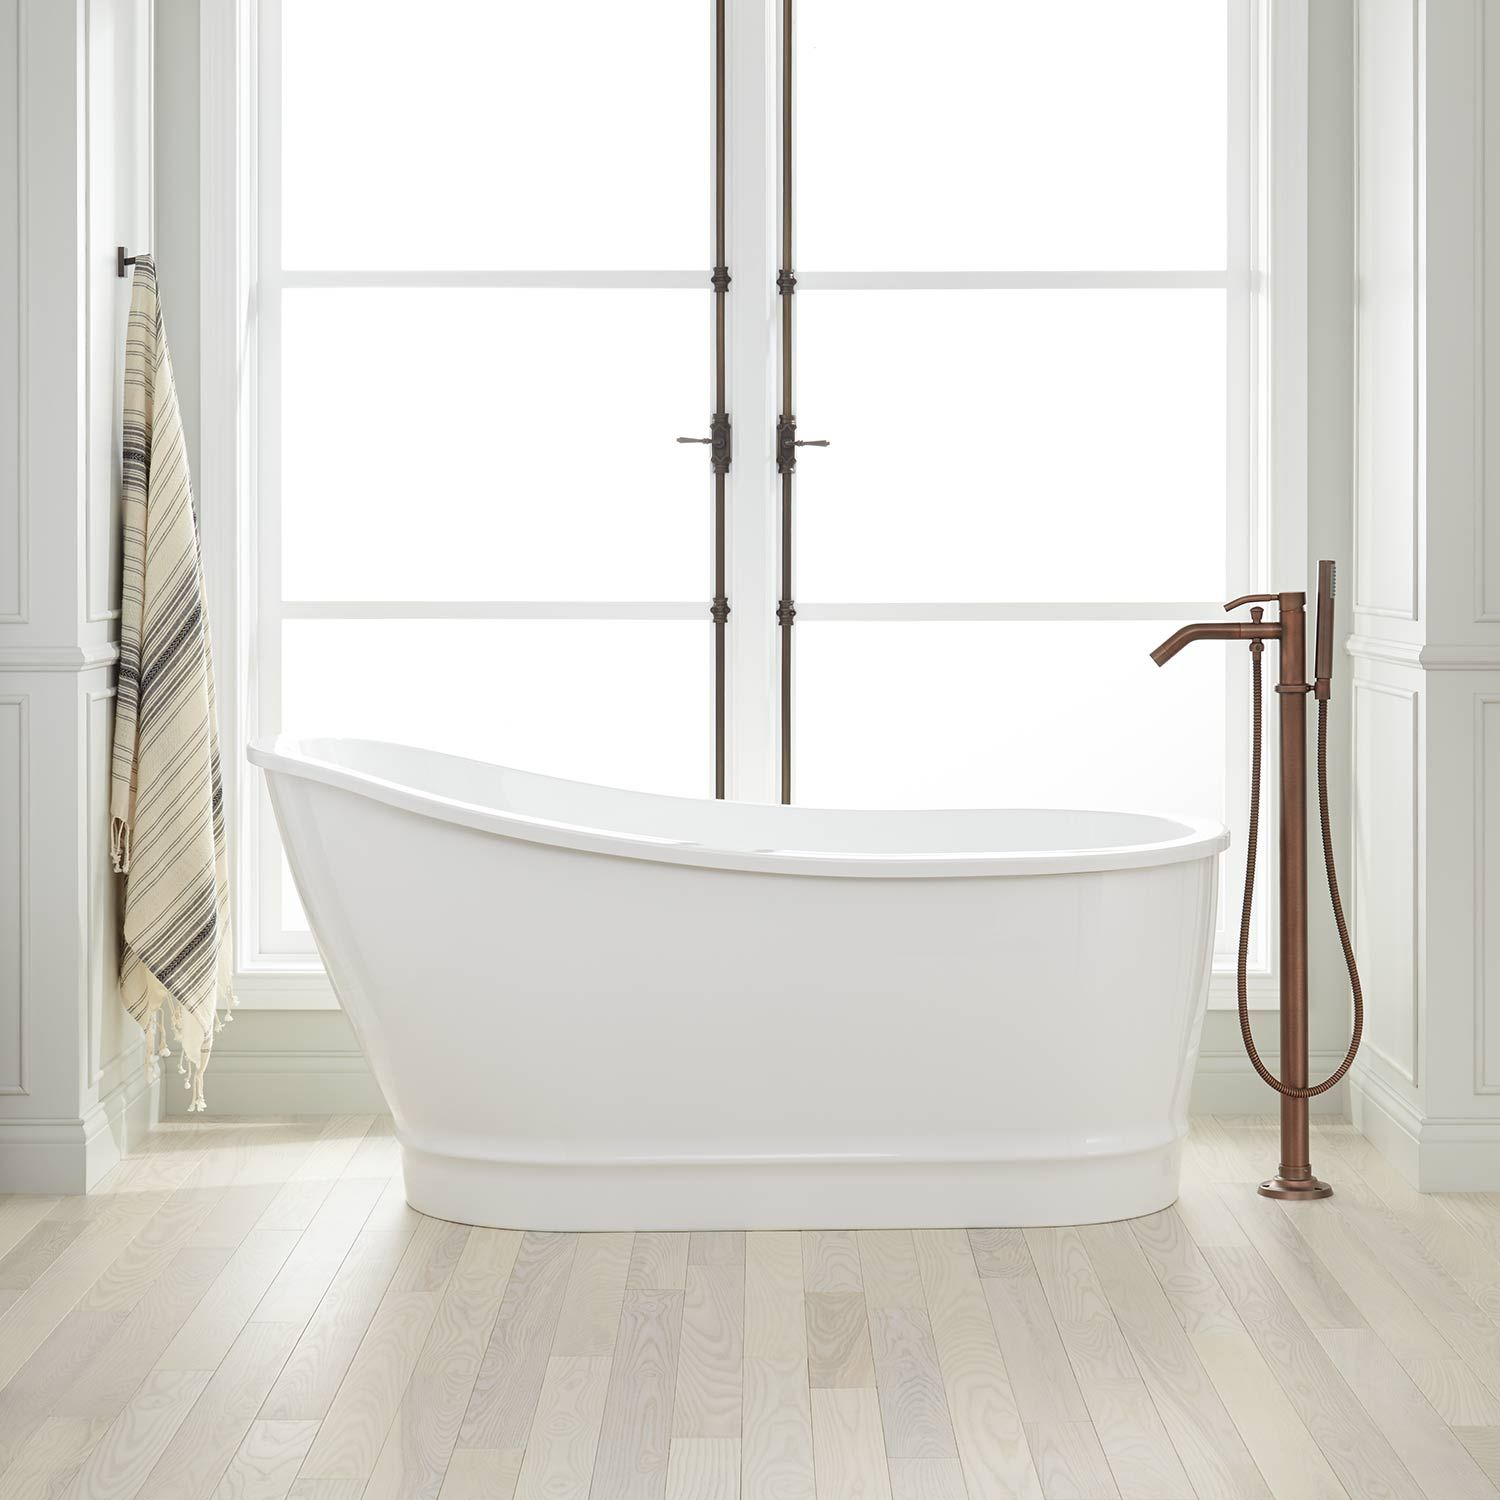 Freestanding Tub Buying Guide Best Style Size And